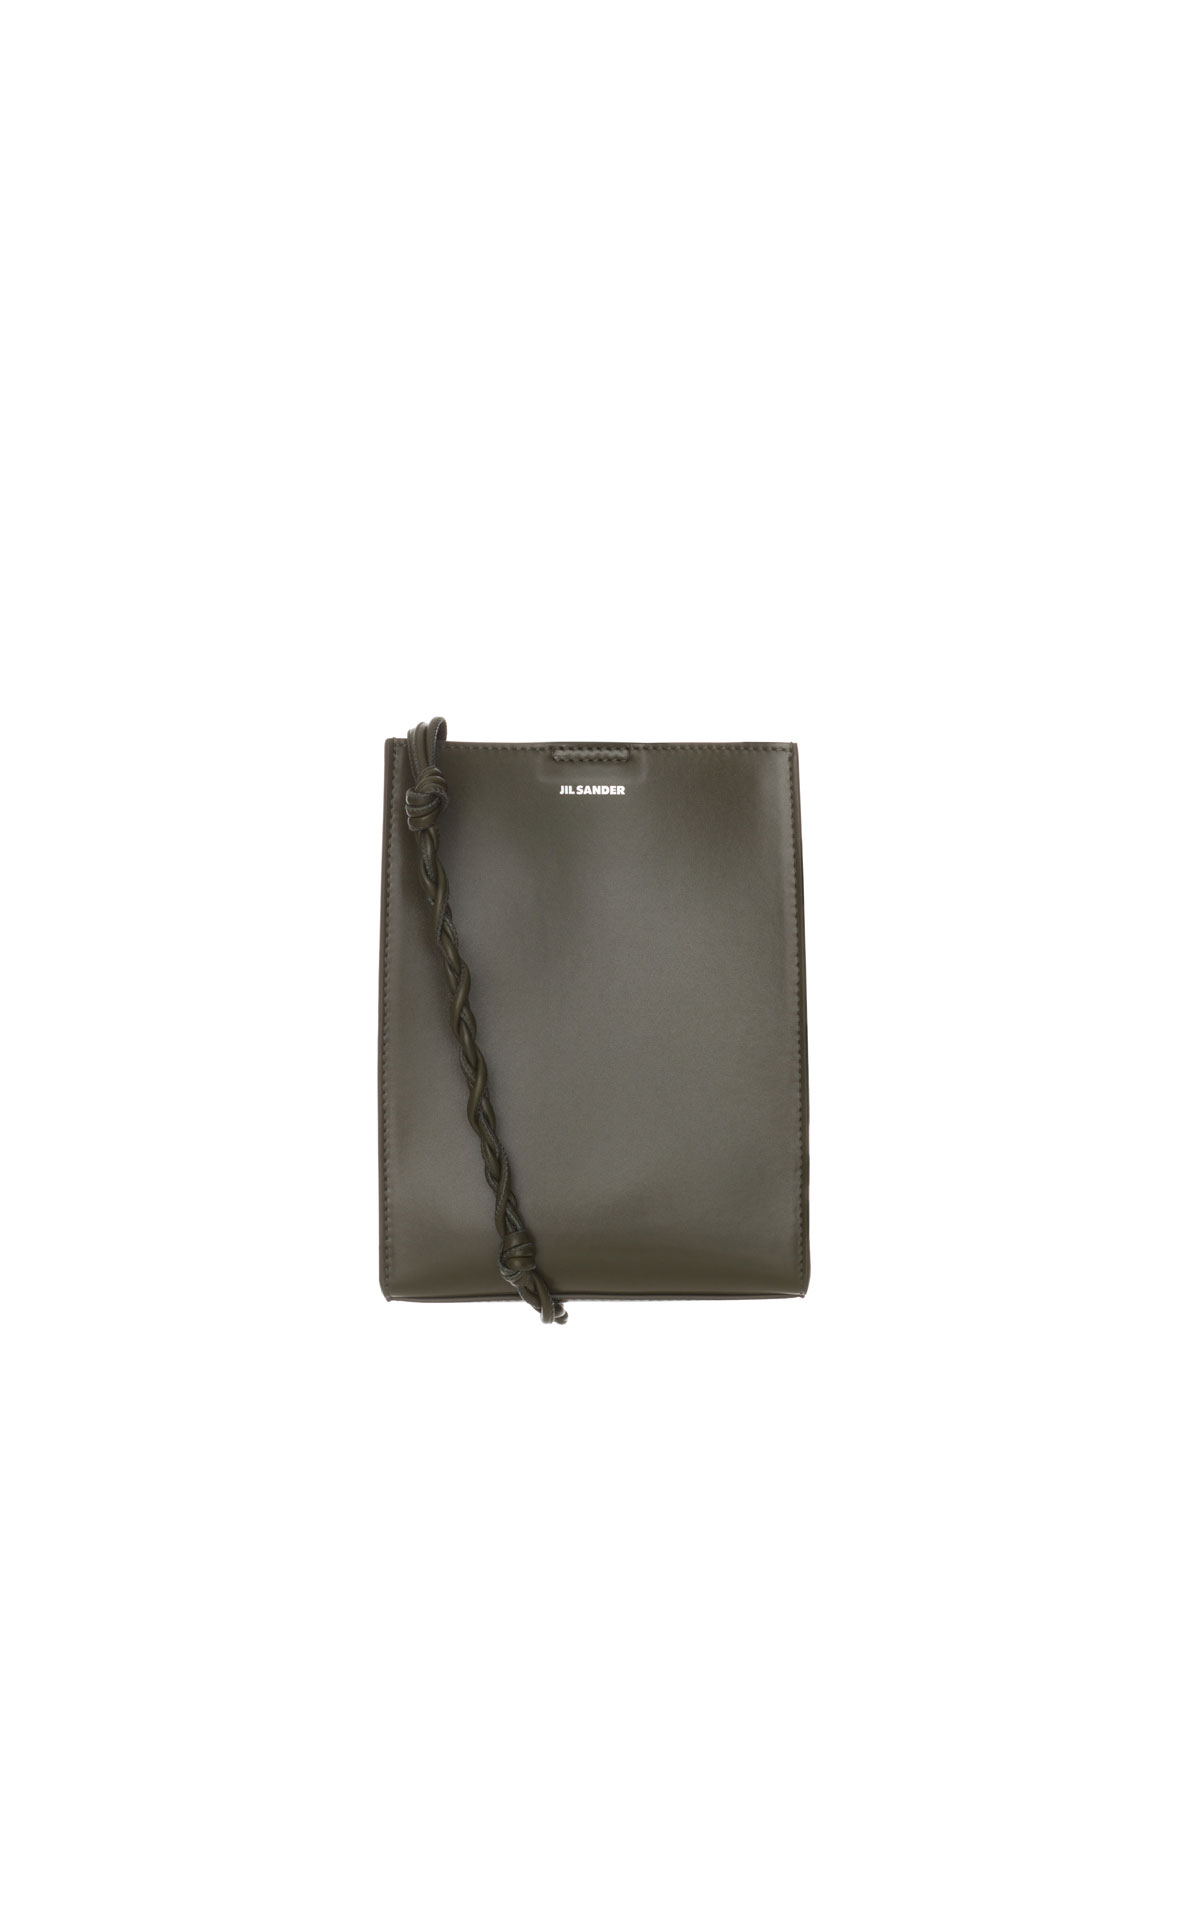 Jil Sander Small Tangle bag in military from Bicester Village